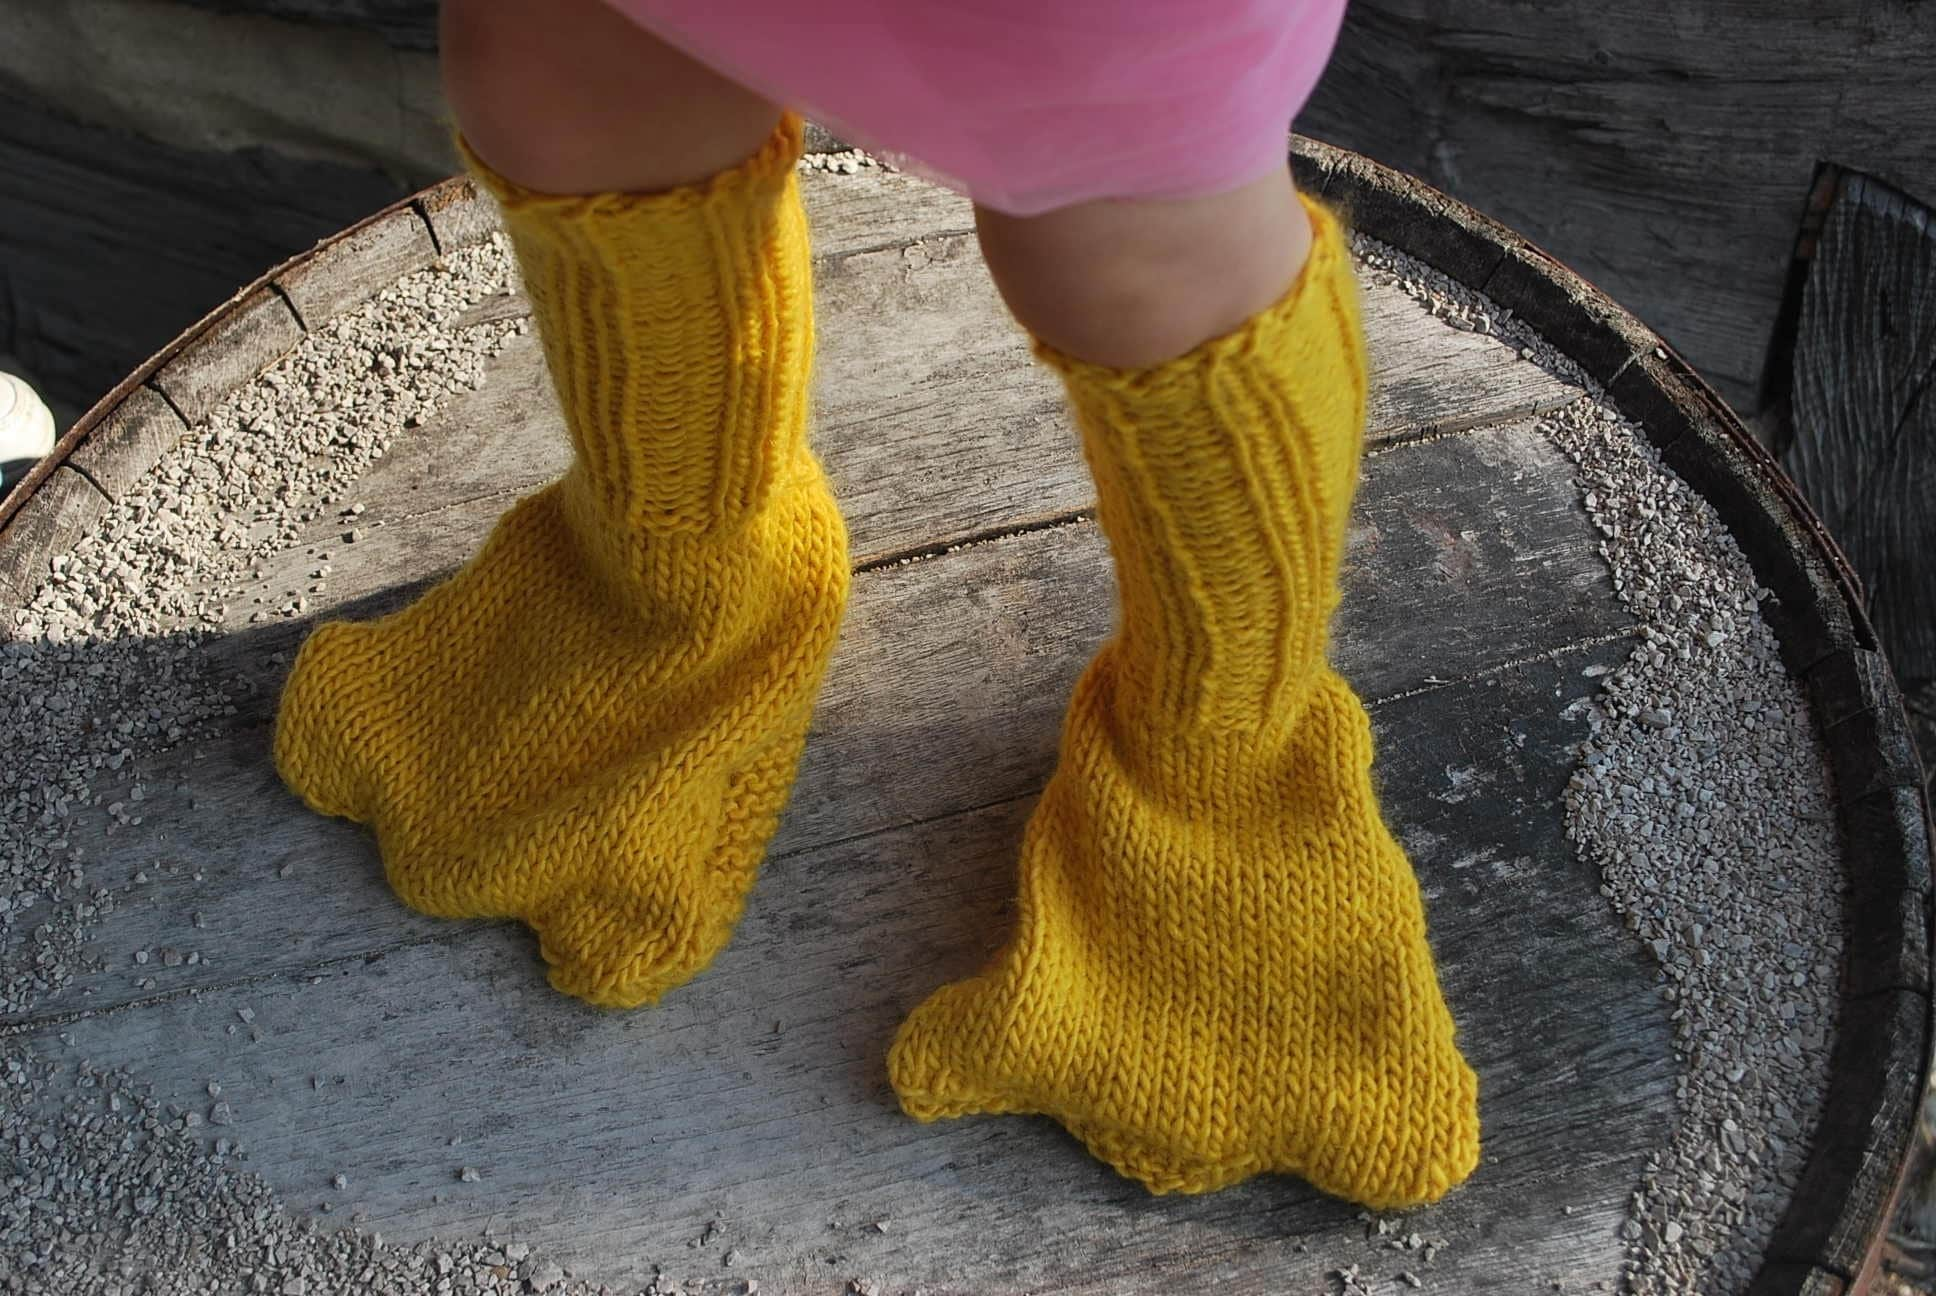 New and Unique Handmade Funny Canary Yellow Knitted Duck Foot Leg Warmer Slippers for Children little Boy Girl Grandson Granddaughter Christmas Present